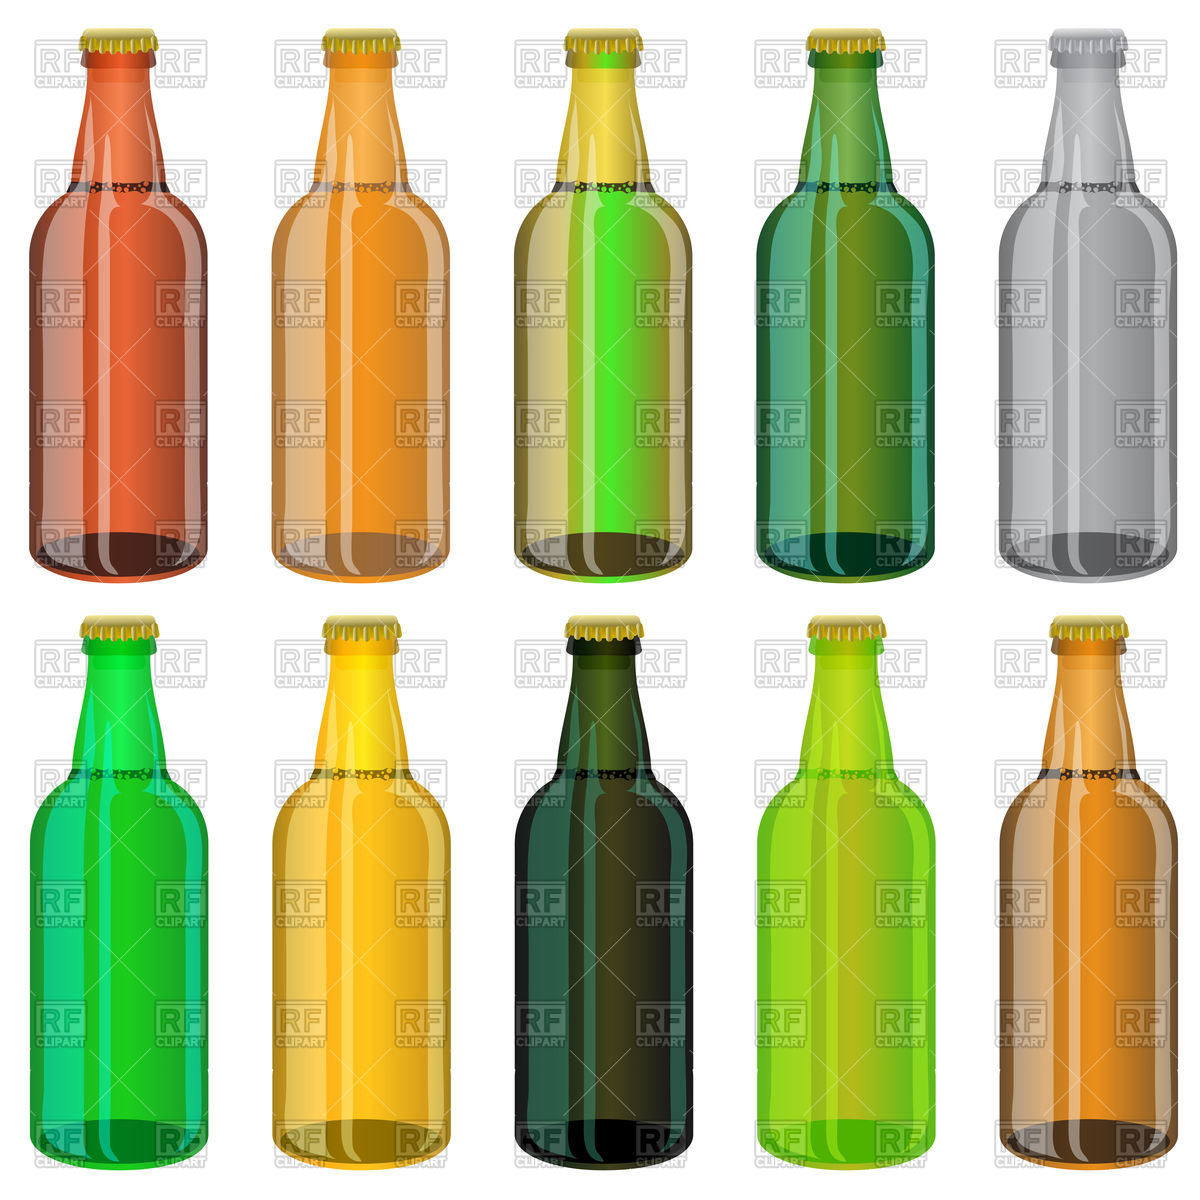 Set of colorful beer glass bottles Vector Image #76988.